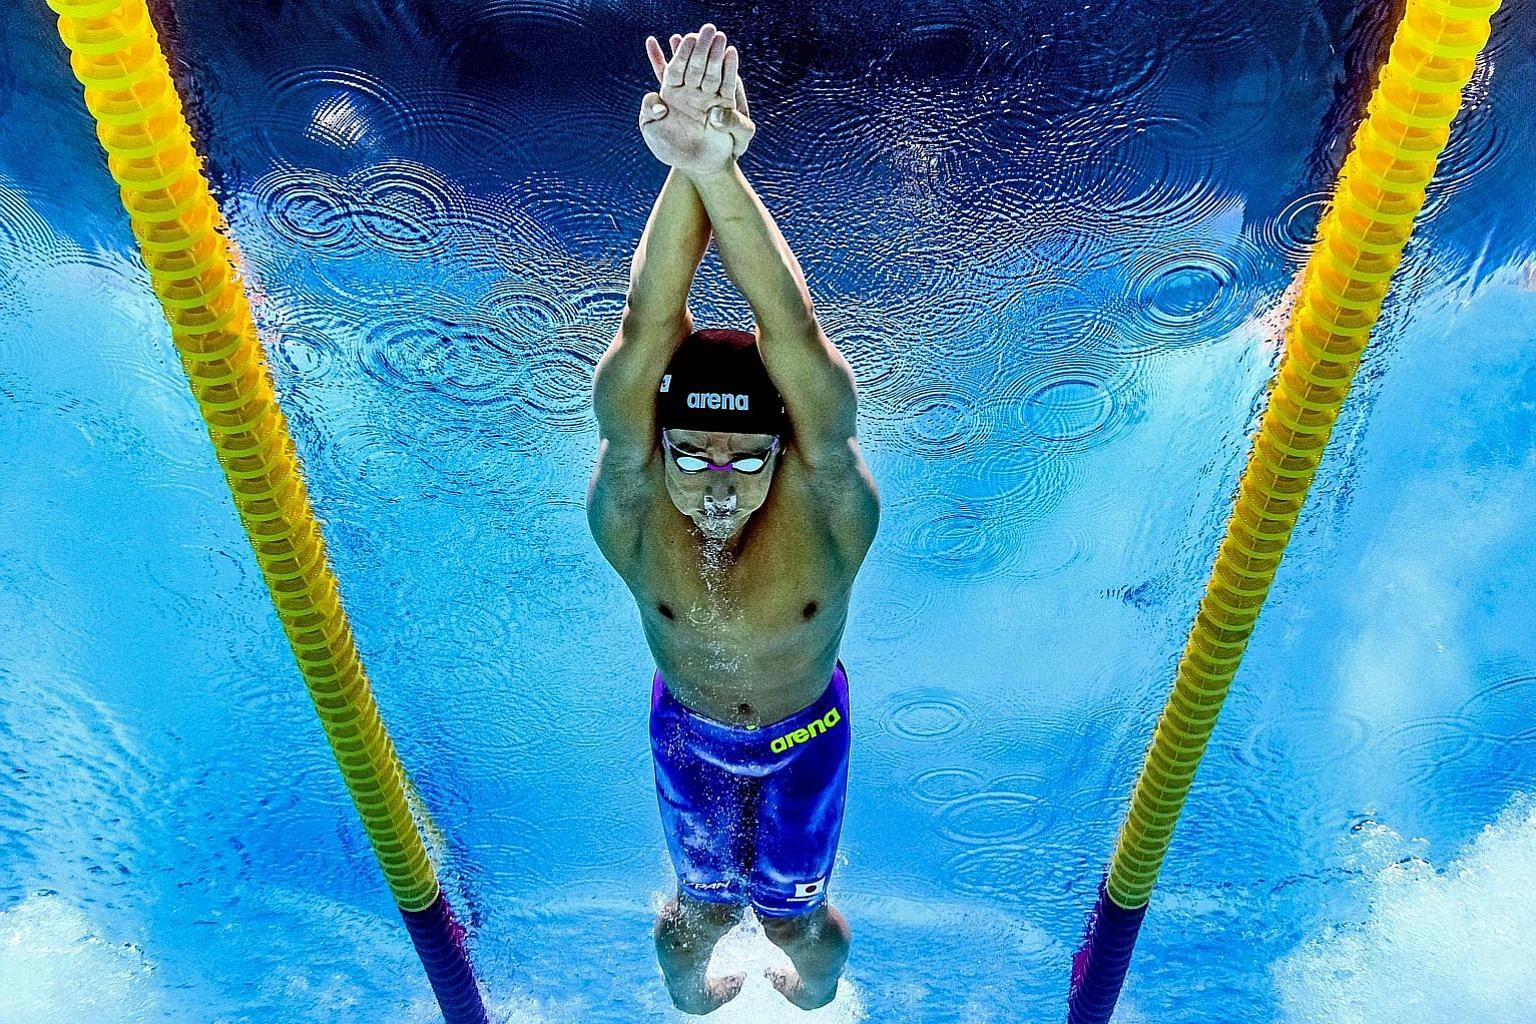 Japan's Daiya Seto, the reigning 400m individual medley world champion, competing in the 200m butterfly semi-finals at the world championships in Budapest. He entered yesterday's final as the top qualifier and eventually took the bronze.